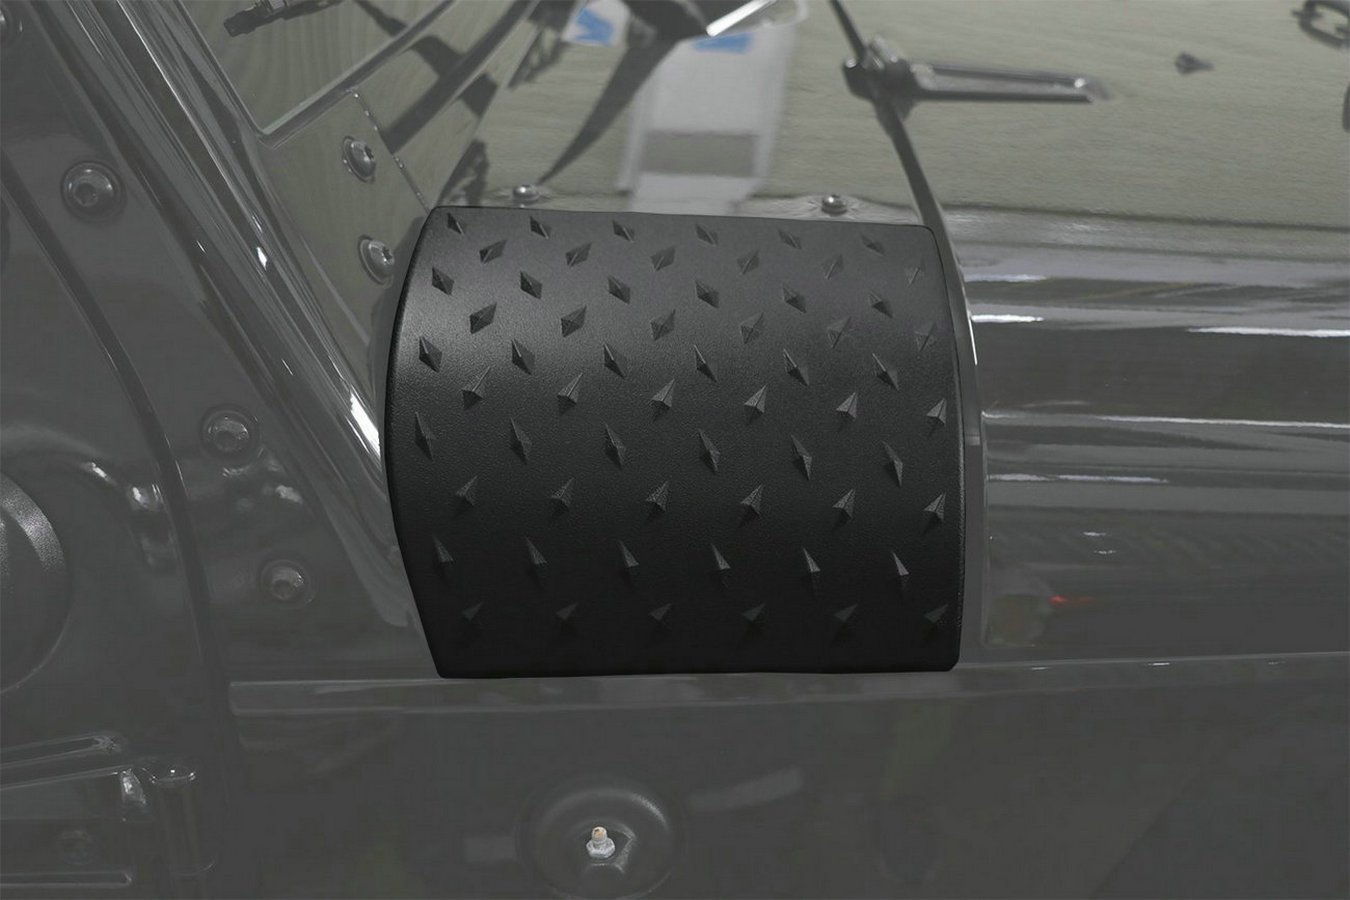 Bentolin Upgrade Black Cowl Body Armor Powder Coated Finish Outer Cowling Cover for for Jeep Wrangler JK JKU Unlimited Rubicon Sahara X Off Road Sport Exterior Accessories Parts 2007-2017